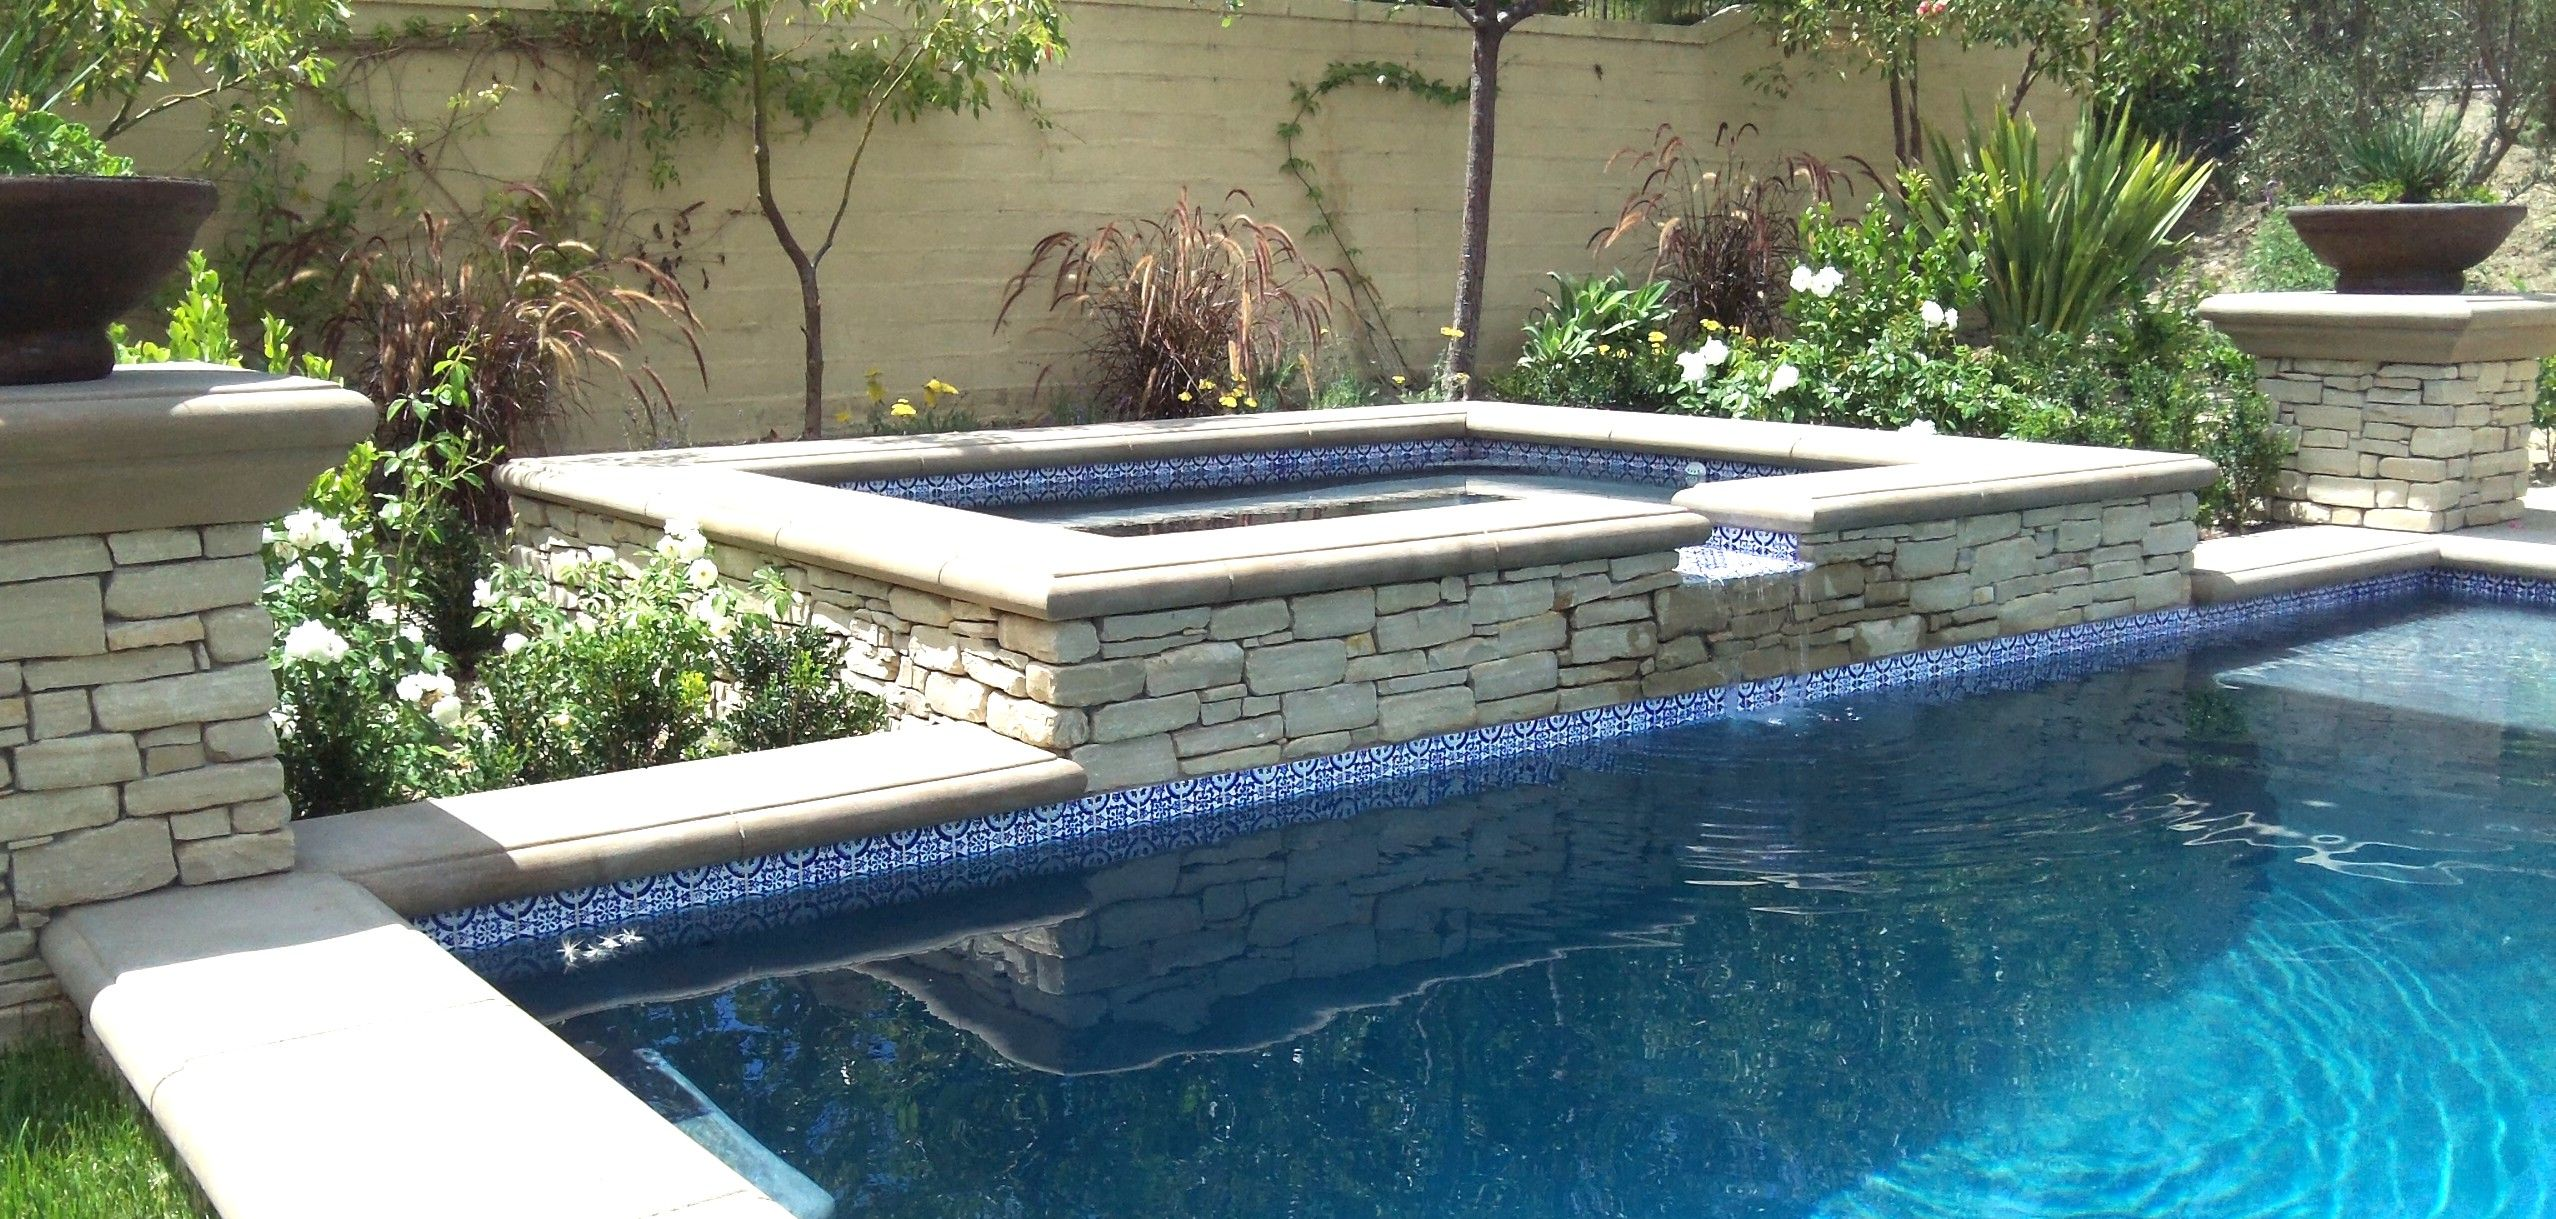 Pool tile designs pool water fountain design ideas small for Small garden pool designs